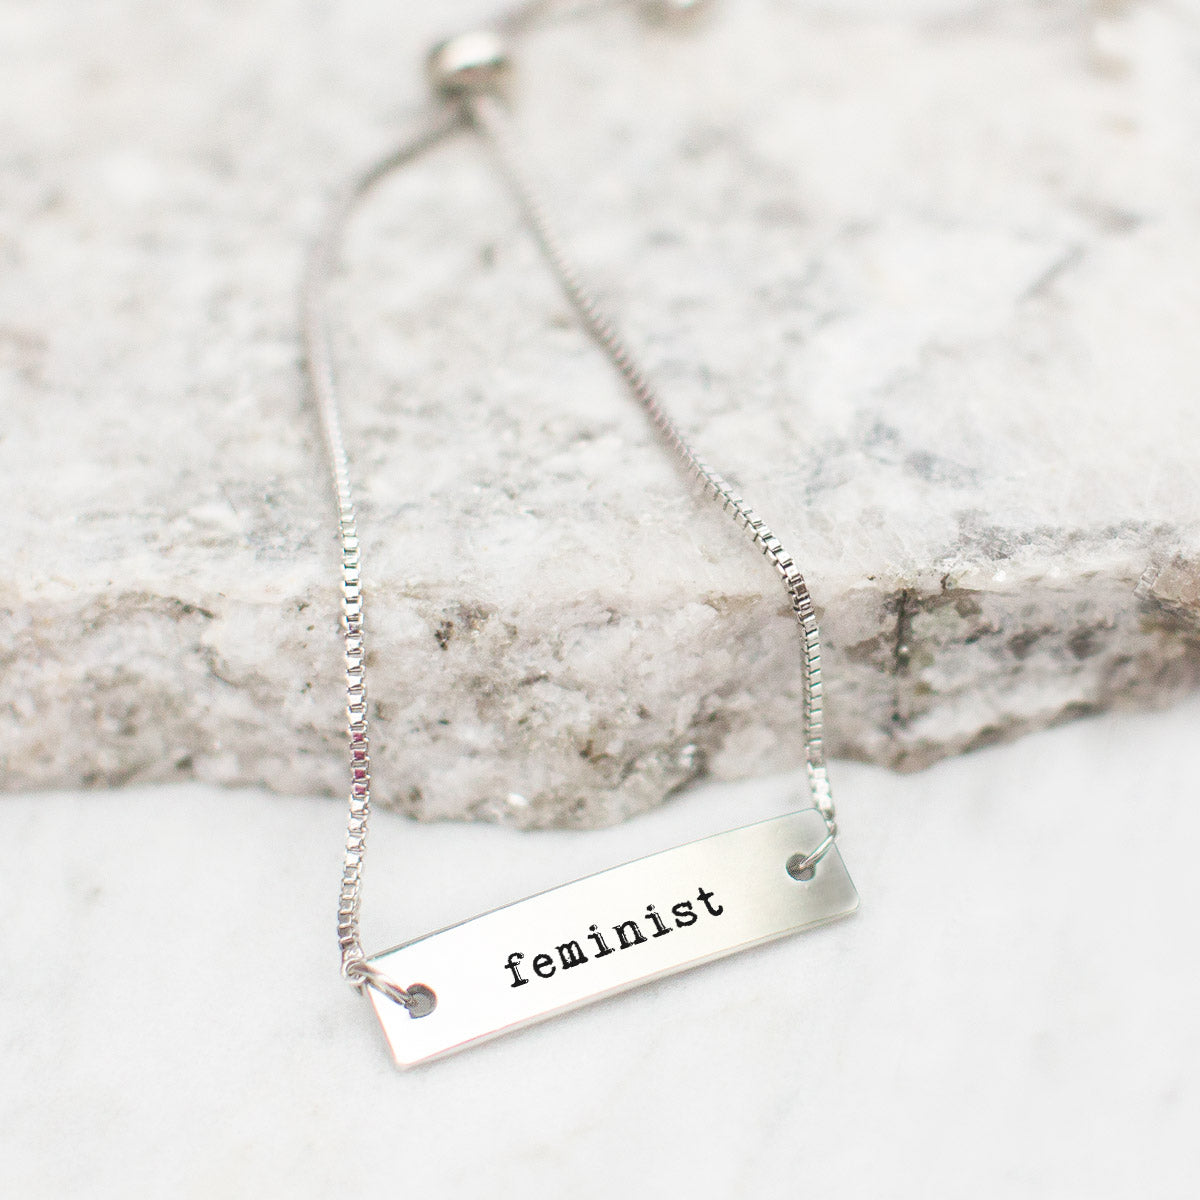 Feminist Silver Bar Adjustable Bracelet - pipercleo.com